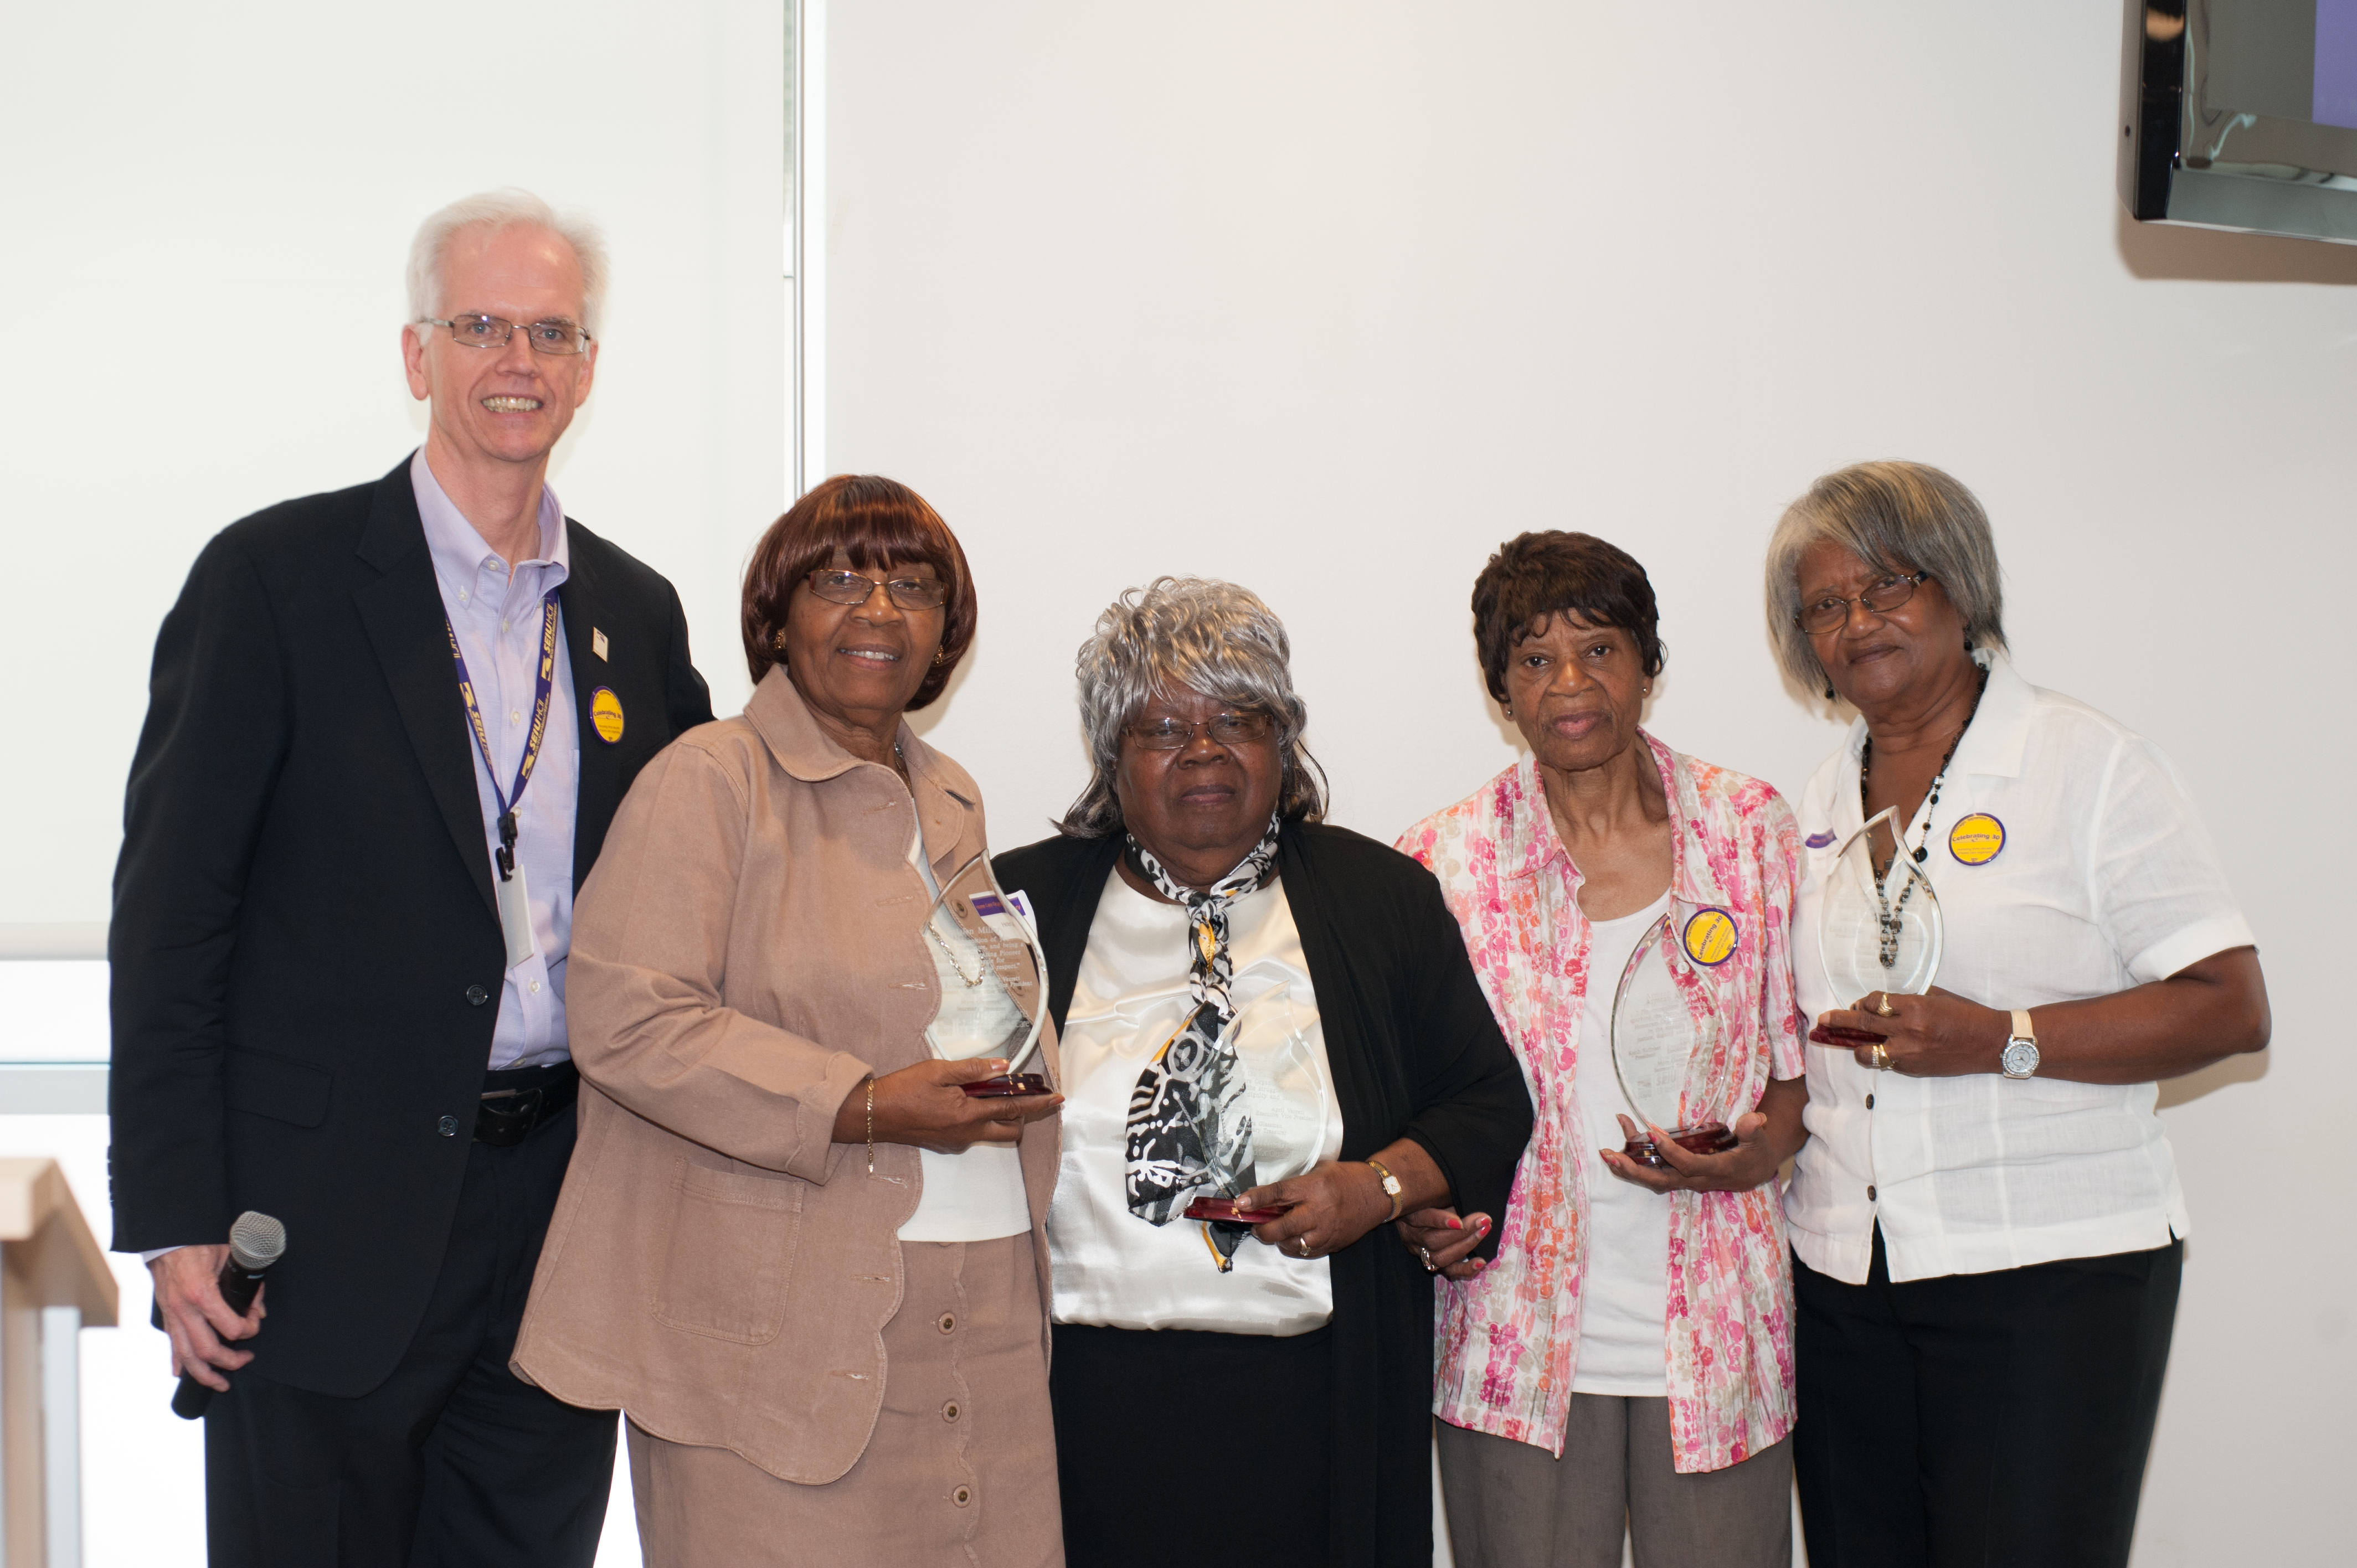 Home care pioneers received awards for a lifetime of service to seniors and people with disabilities.